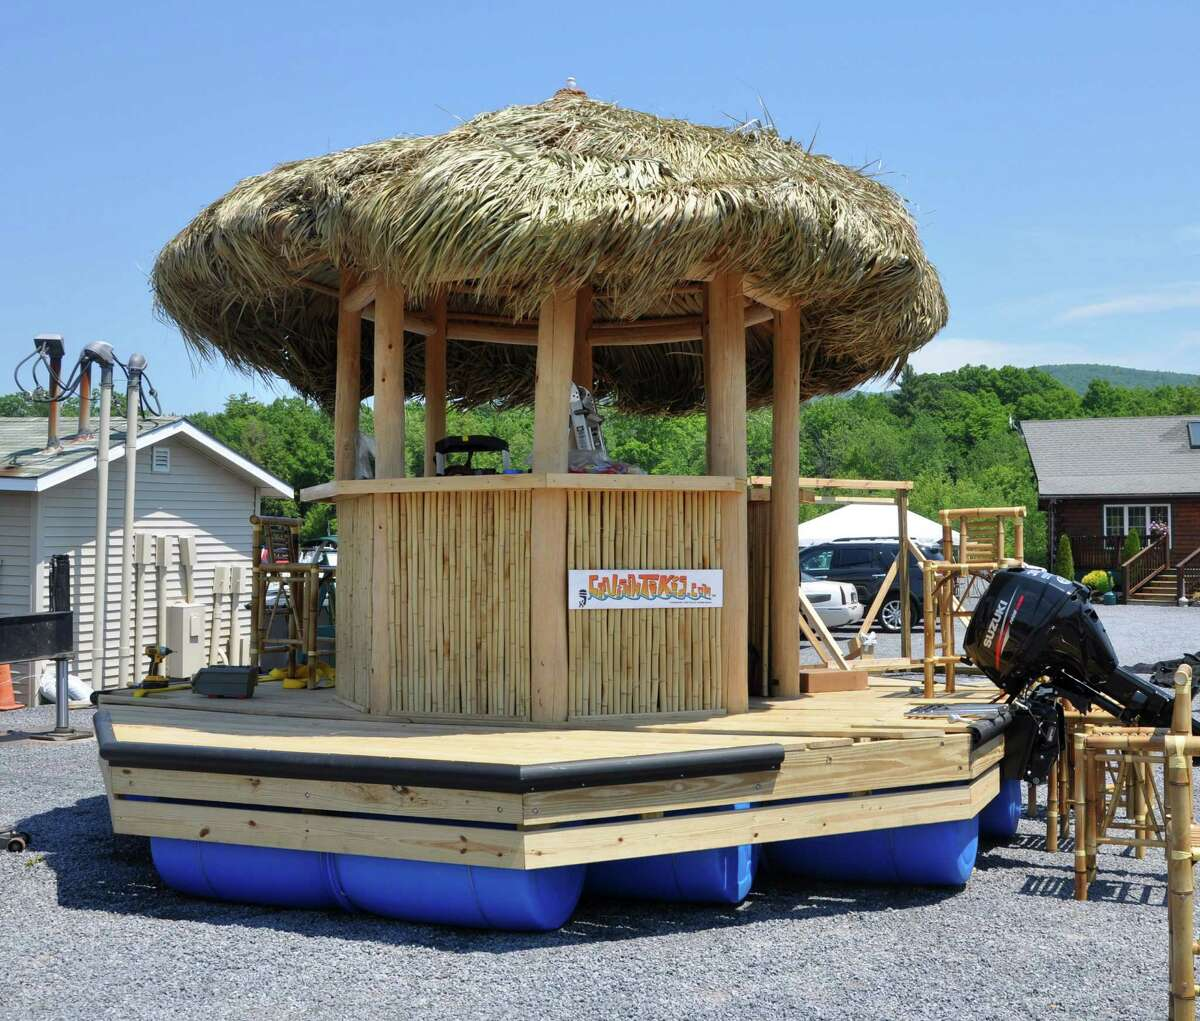 A new tiki bar boat getting ready to be launched at the Harris Bay Yacht Club on Monday, June 20, 2016 in Lake George, N.Y. (Eliza Mineaux/Special to the Times Union)